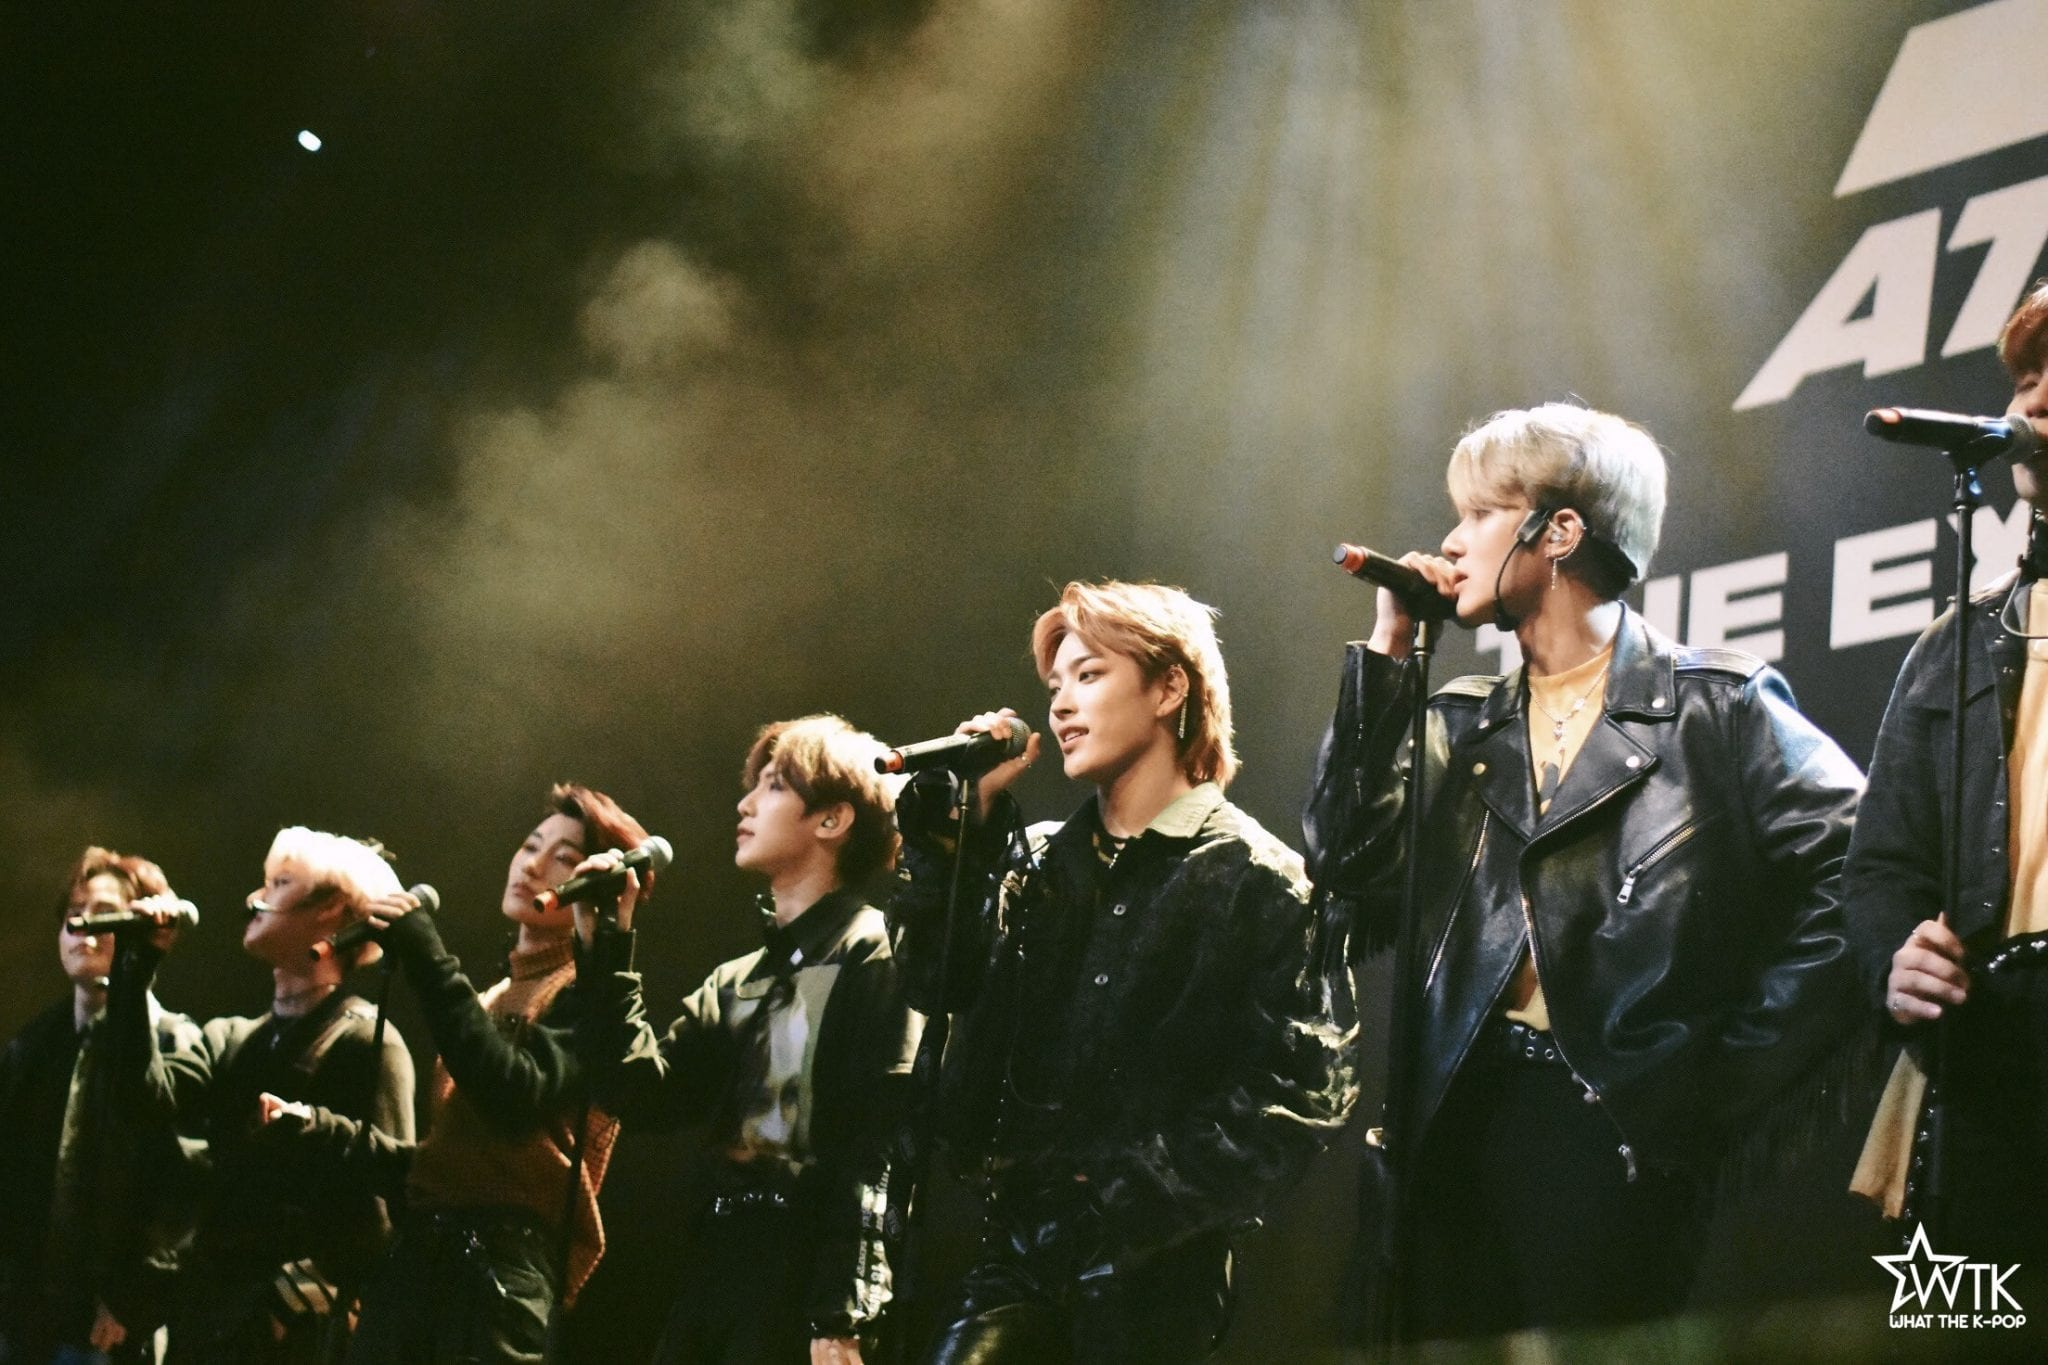 PHOTO GALLERY: ATEEZ Impressively Heats Up The Stage On First U.S. Tour